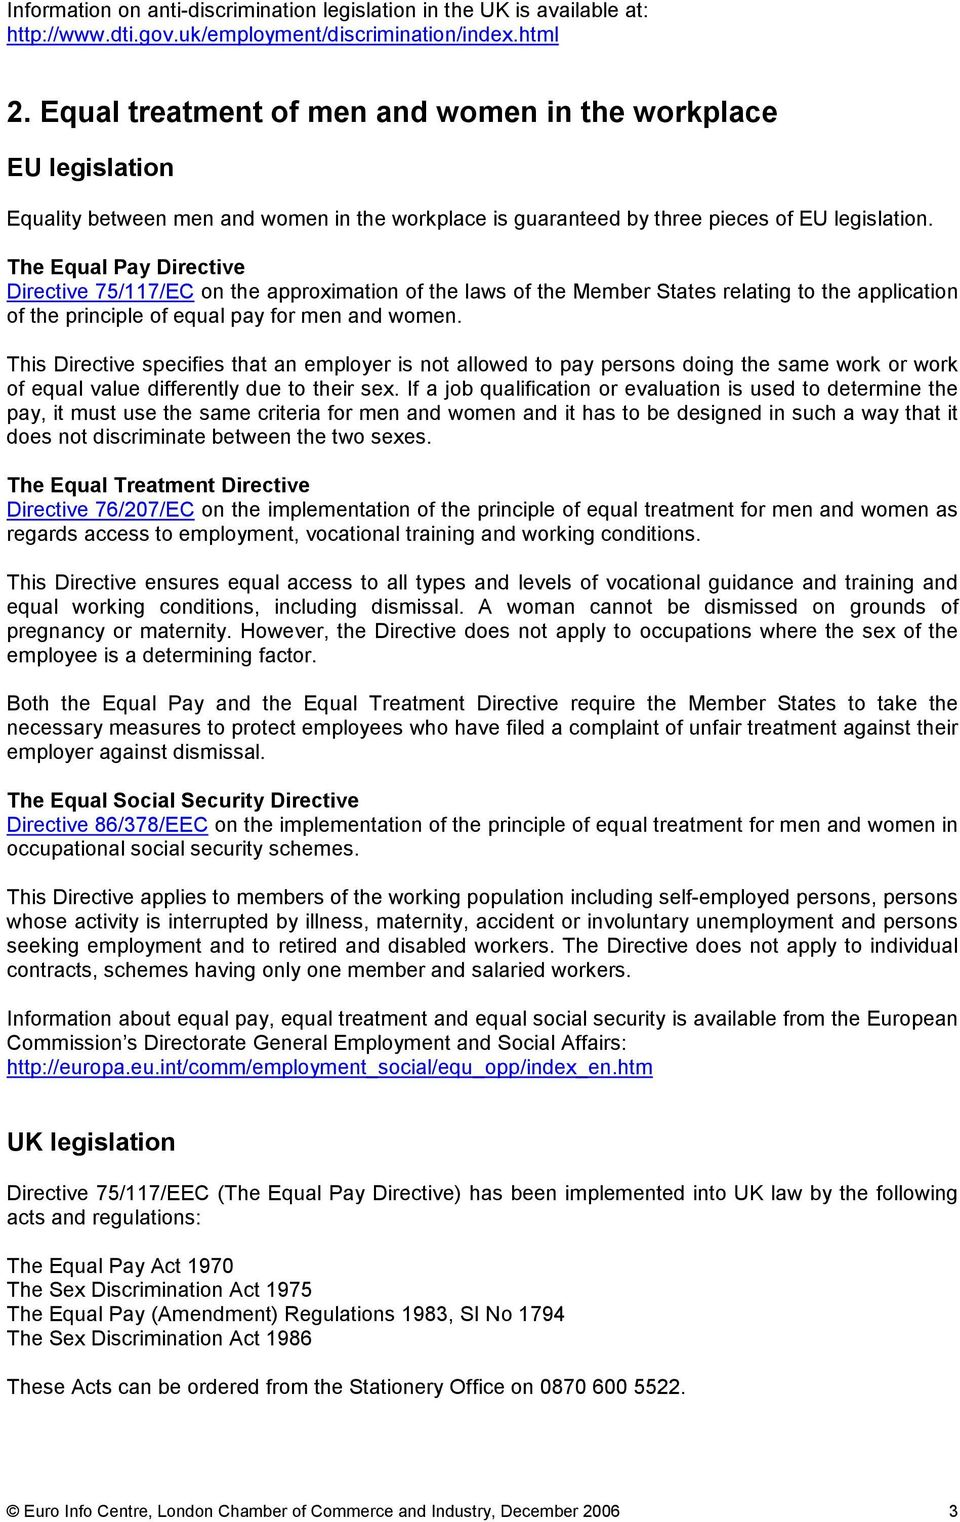 The Equal Pay Directive Directive 75/117/EC on the approximation of the laws of the Member States relating to the application of the principle of equal pay for men and women.